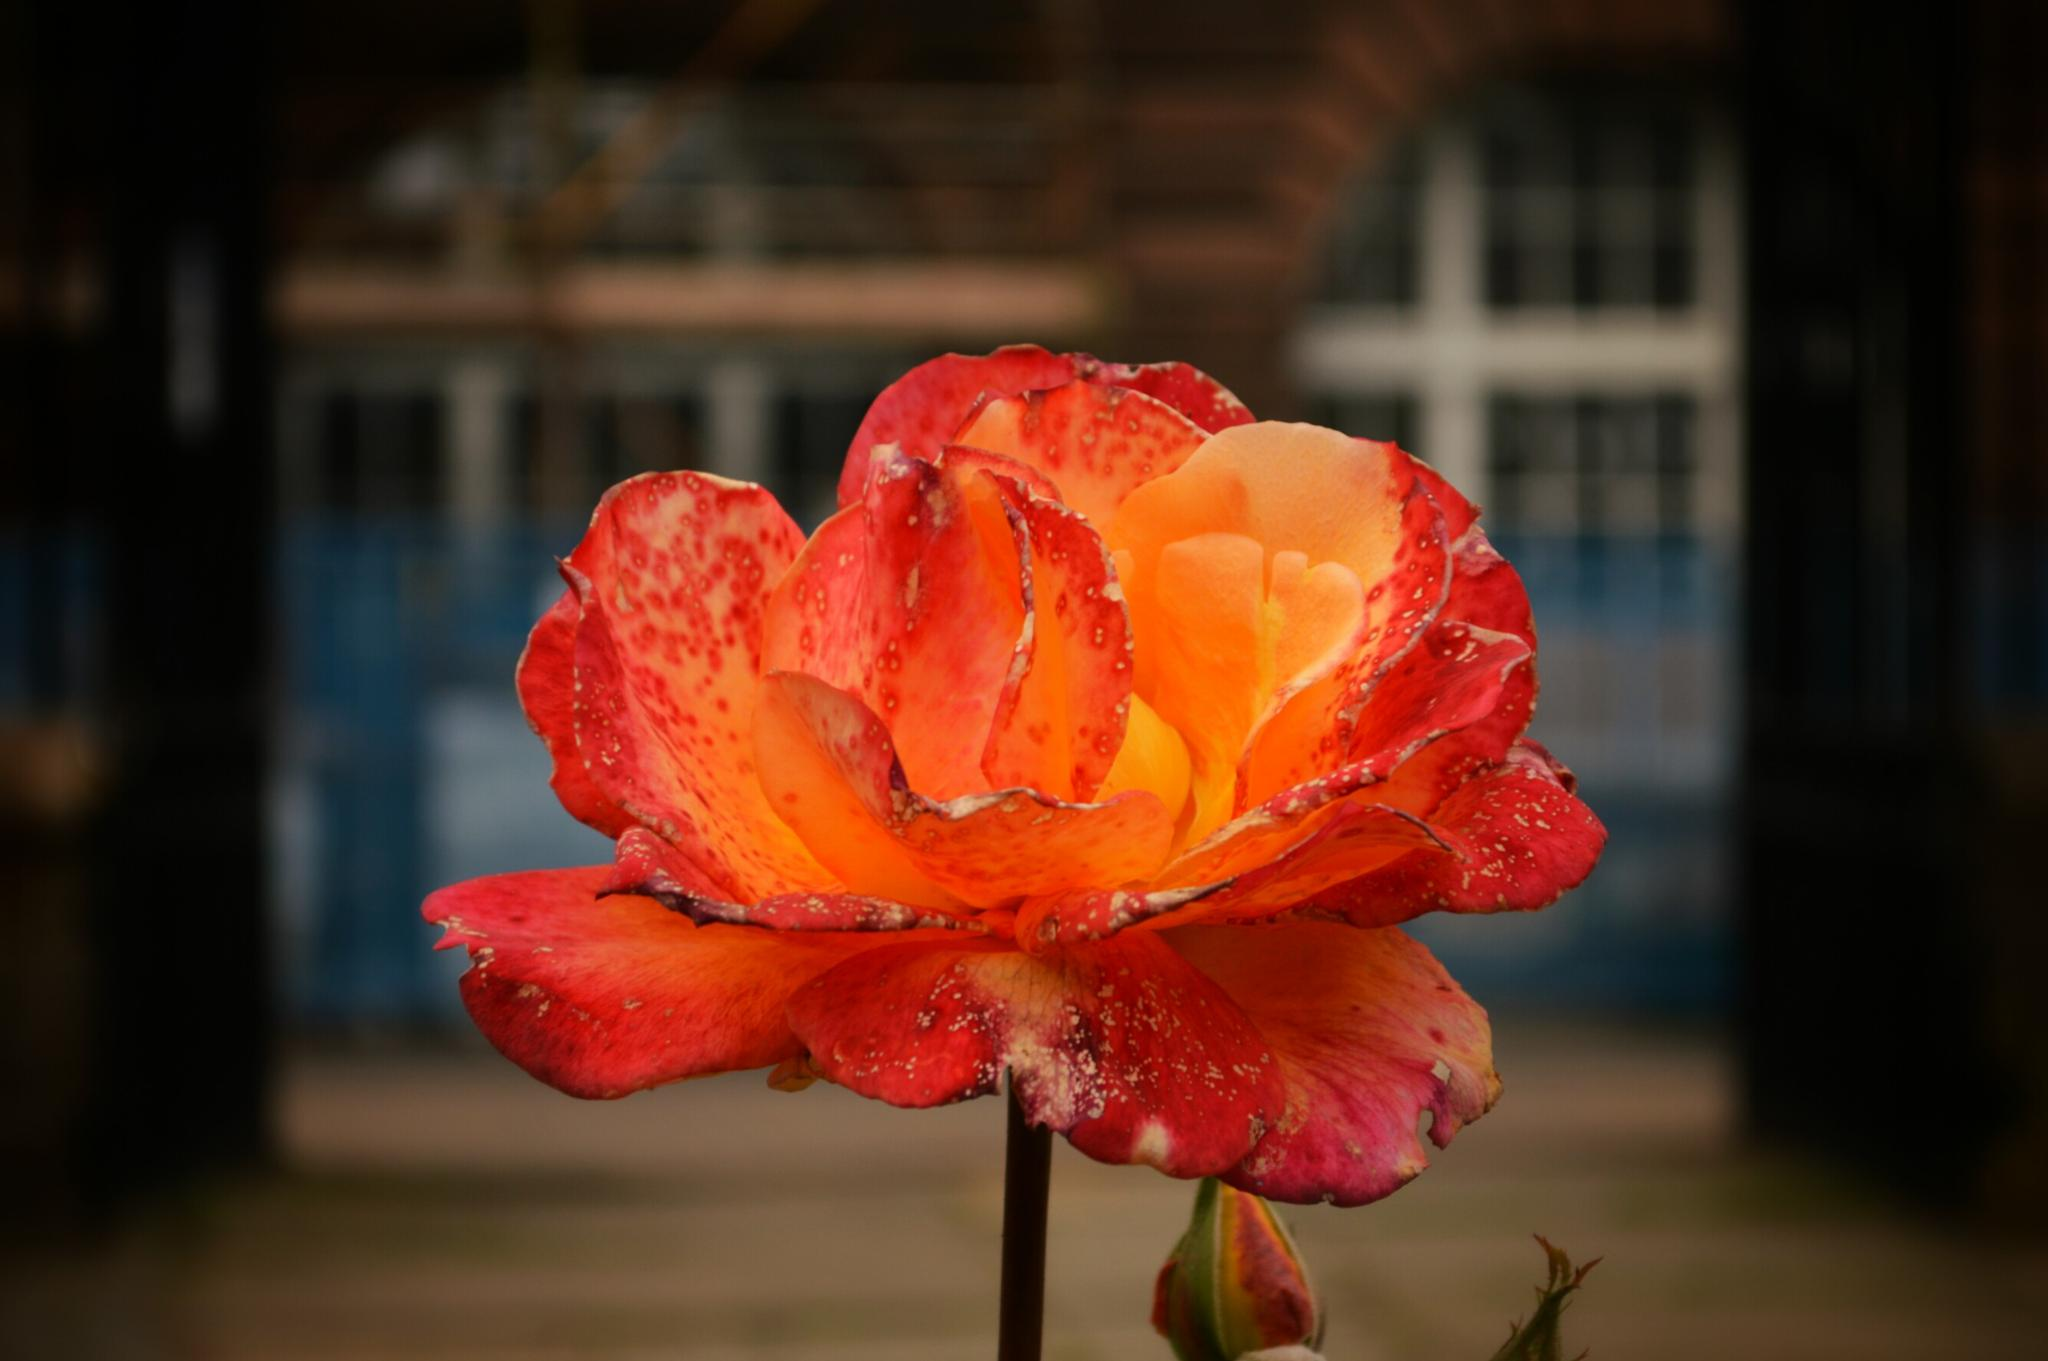 Dying Flower by The PhotoGrabber